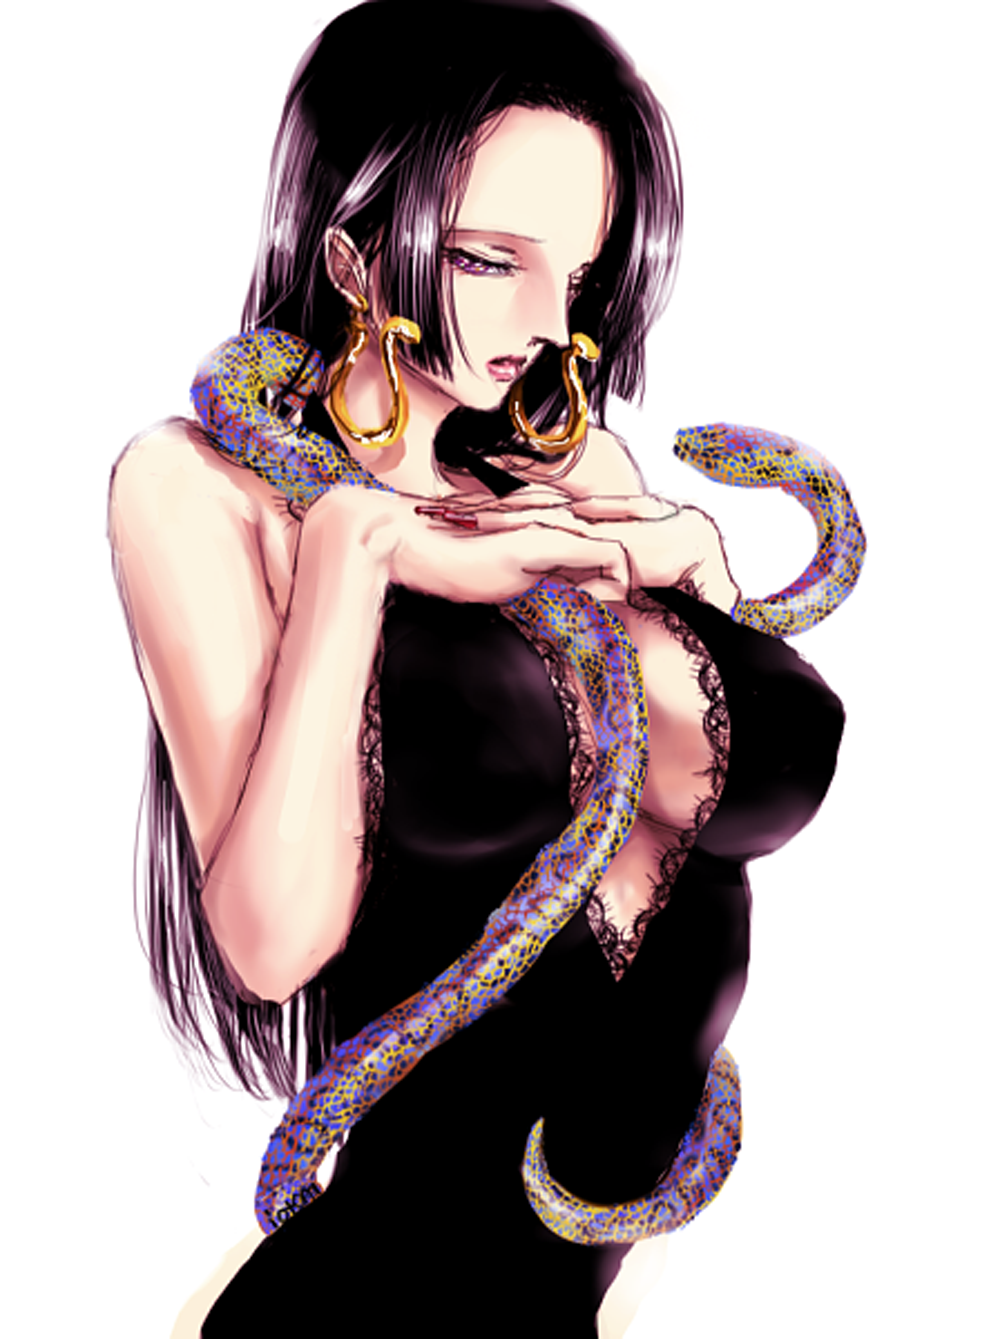 Toon sex pic ##00013061779 boa hancock breasts cape cleavage earrings epaulettes highres jewelry long hair midriff navel one piece